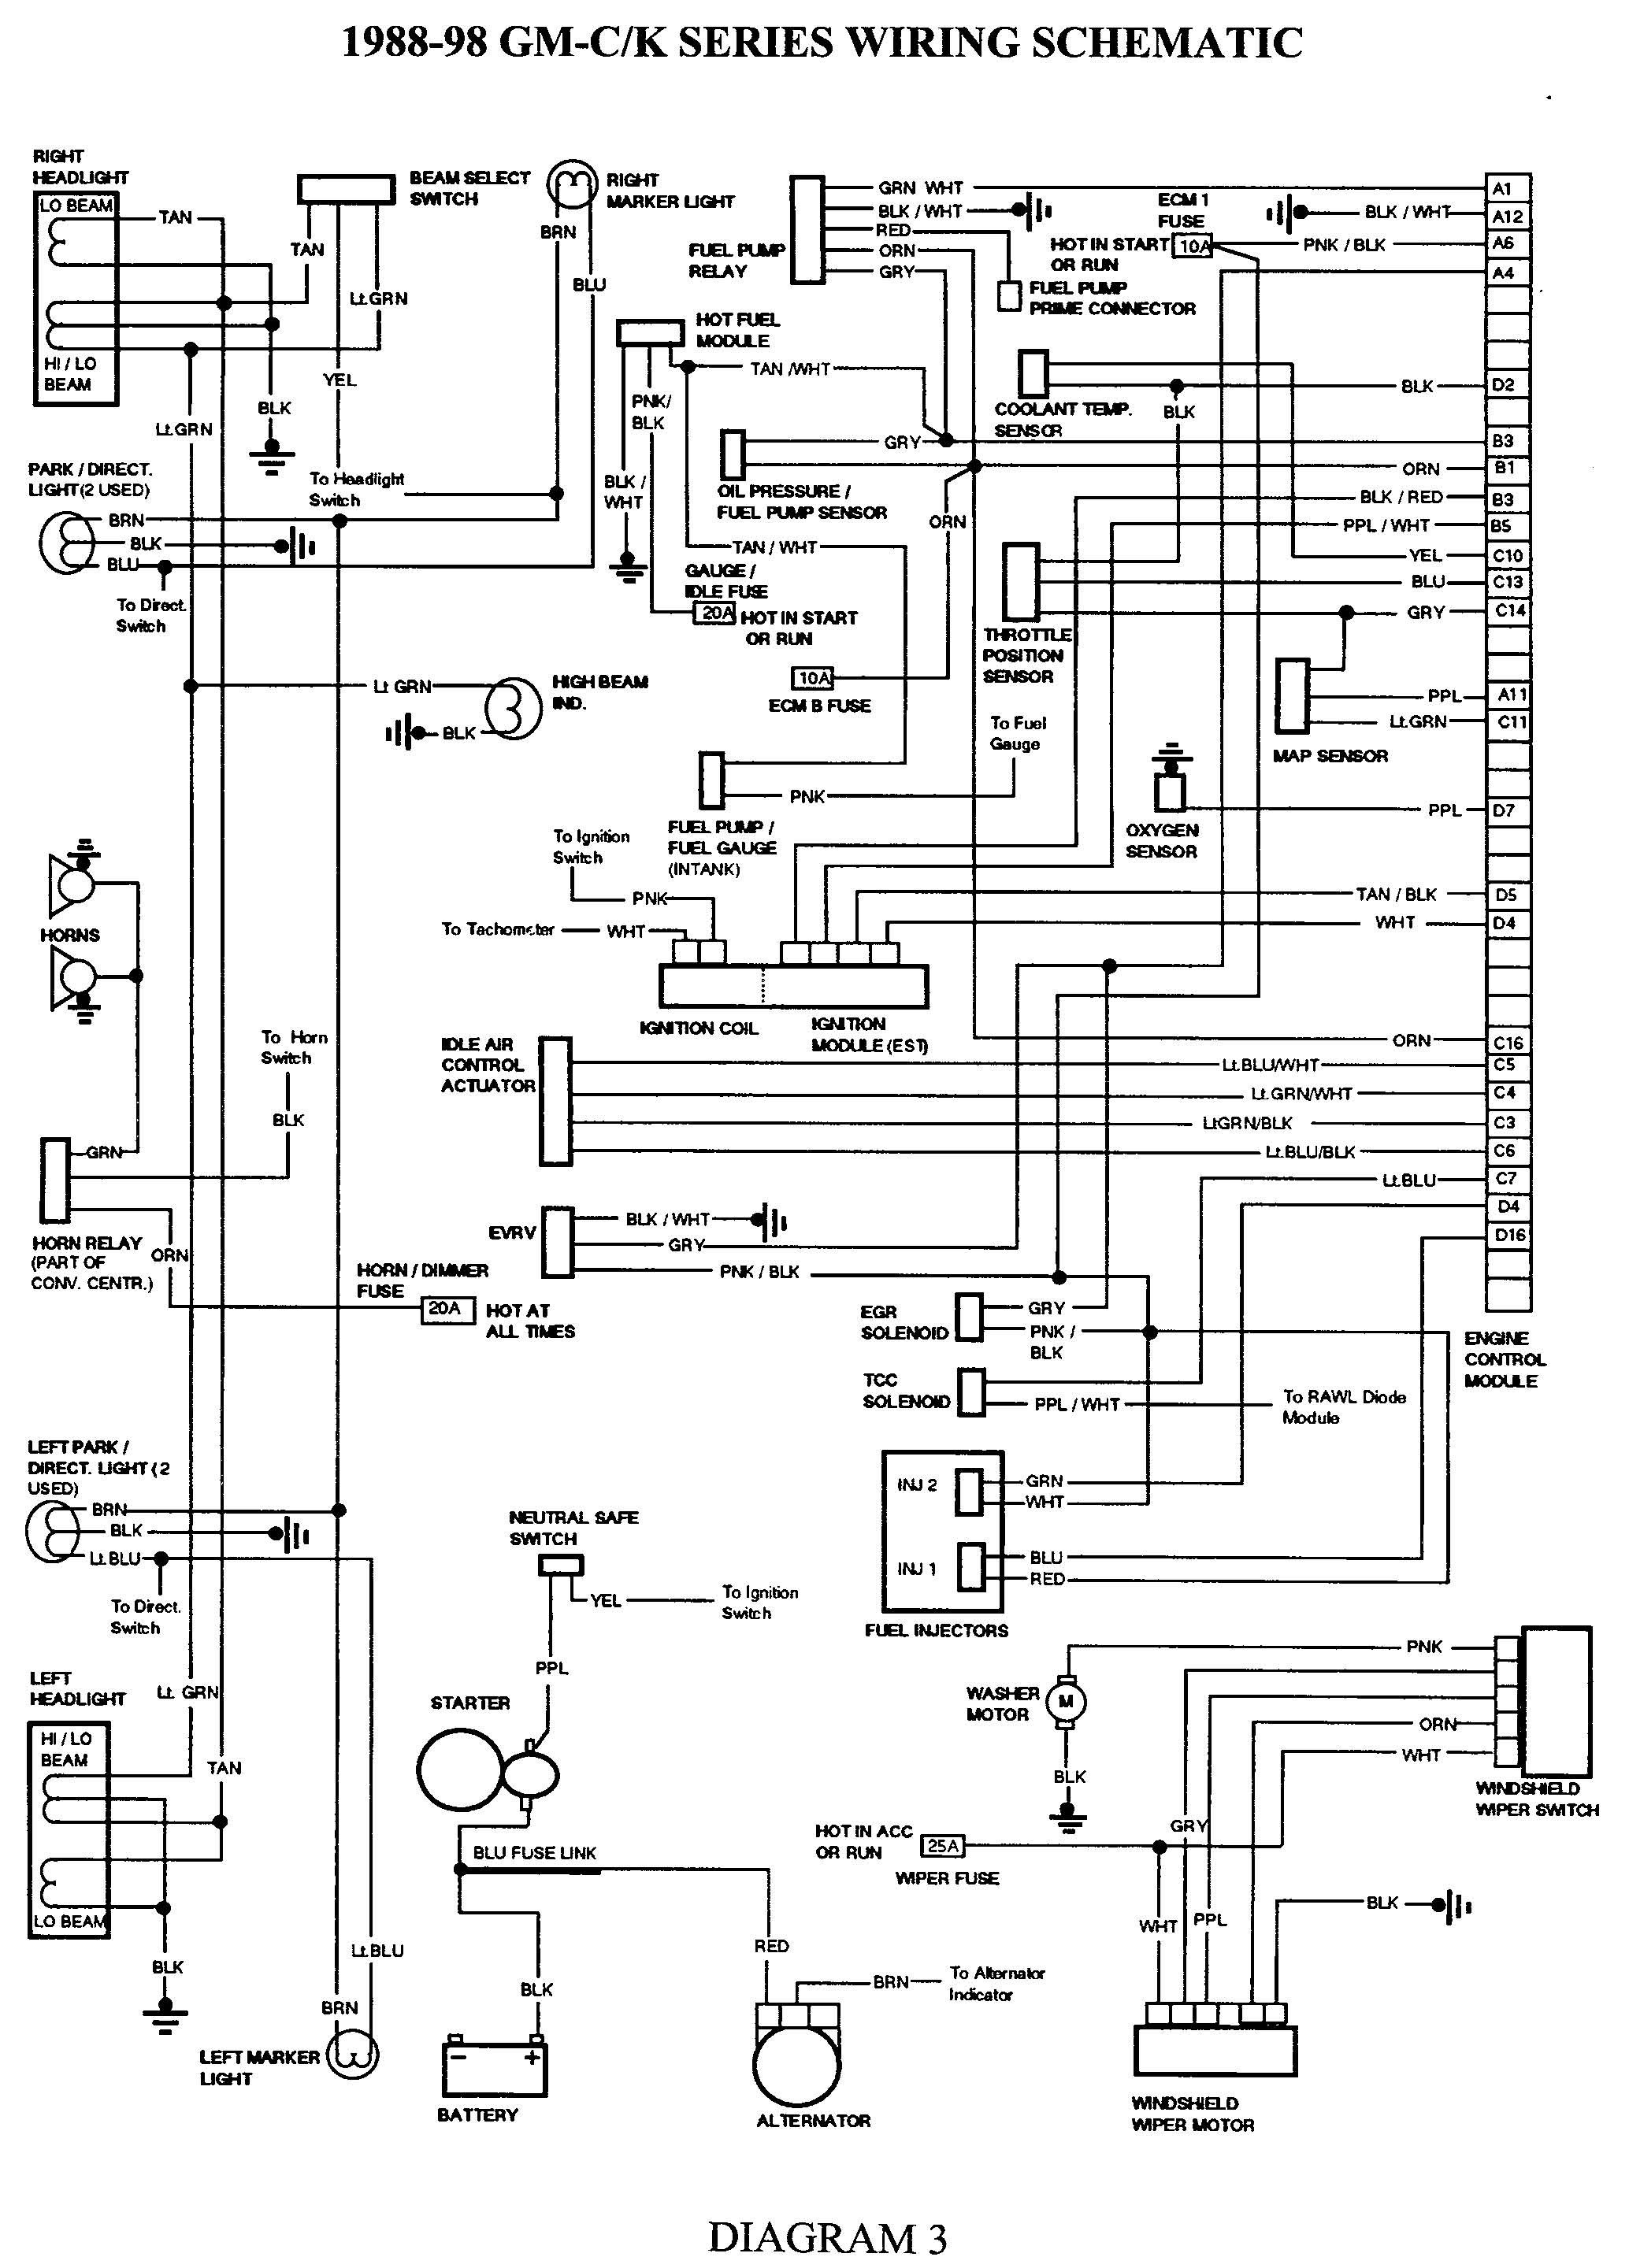 Chevy 1500 Wiring Diagrams Further 1996 S10 Diagram On Samsung Omnia I900 Circuit Diagramacura Car Gallery 2500 Smart U2022 Rh Emgsolutions Co